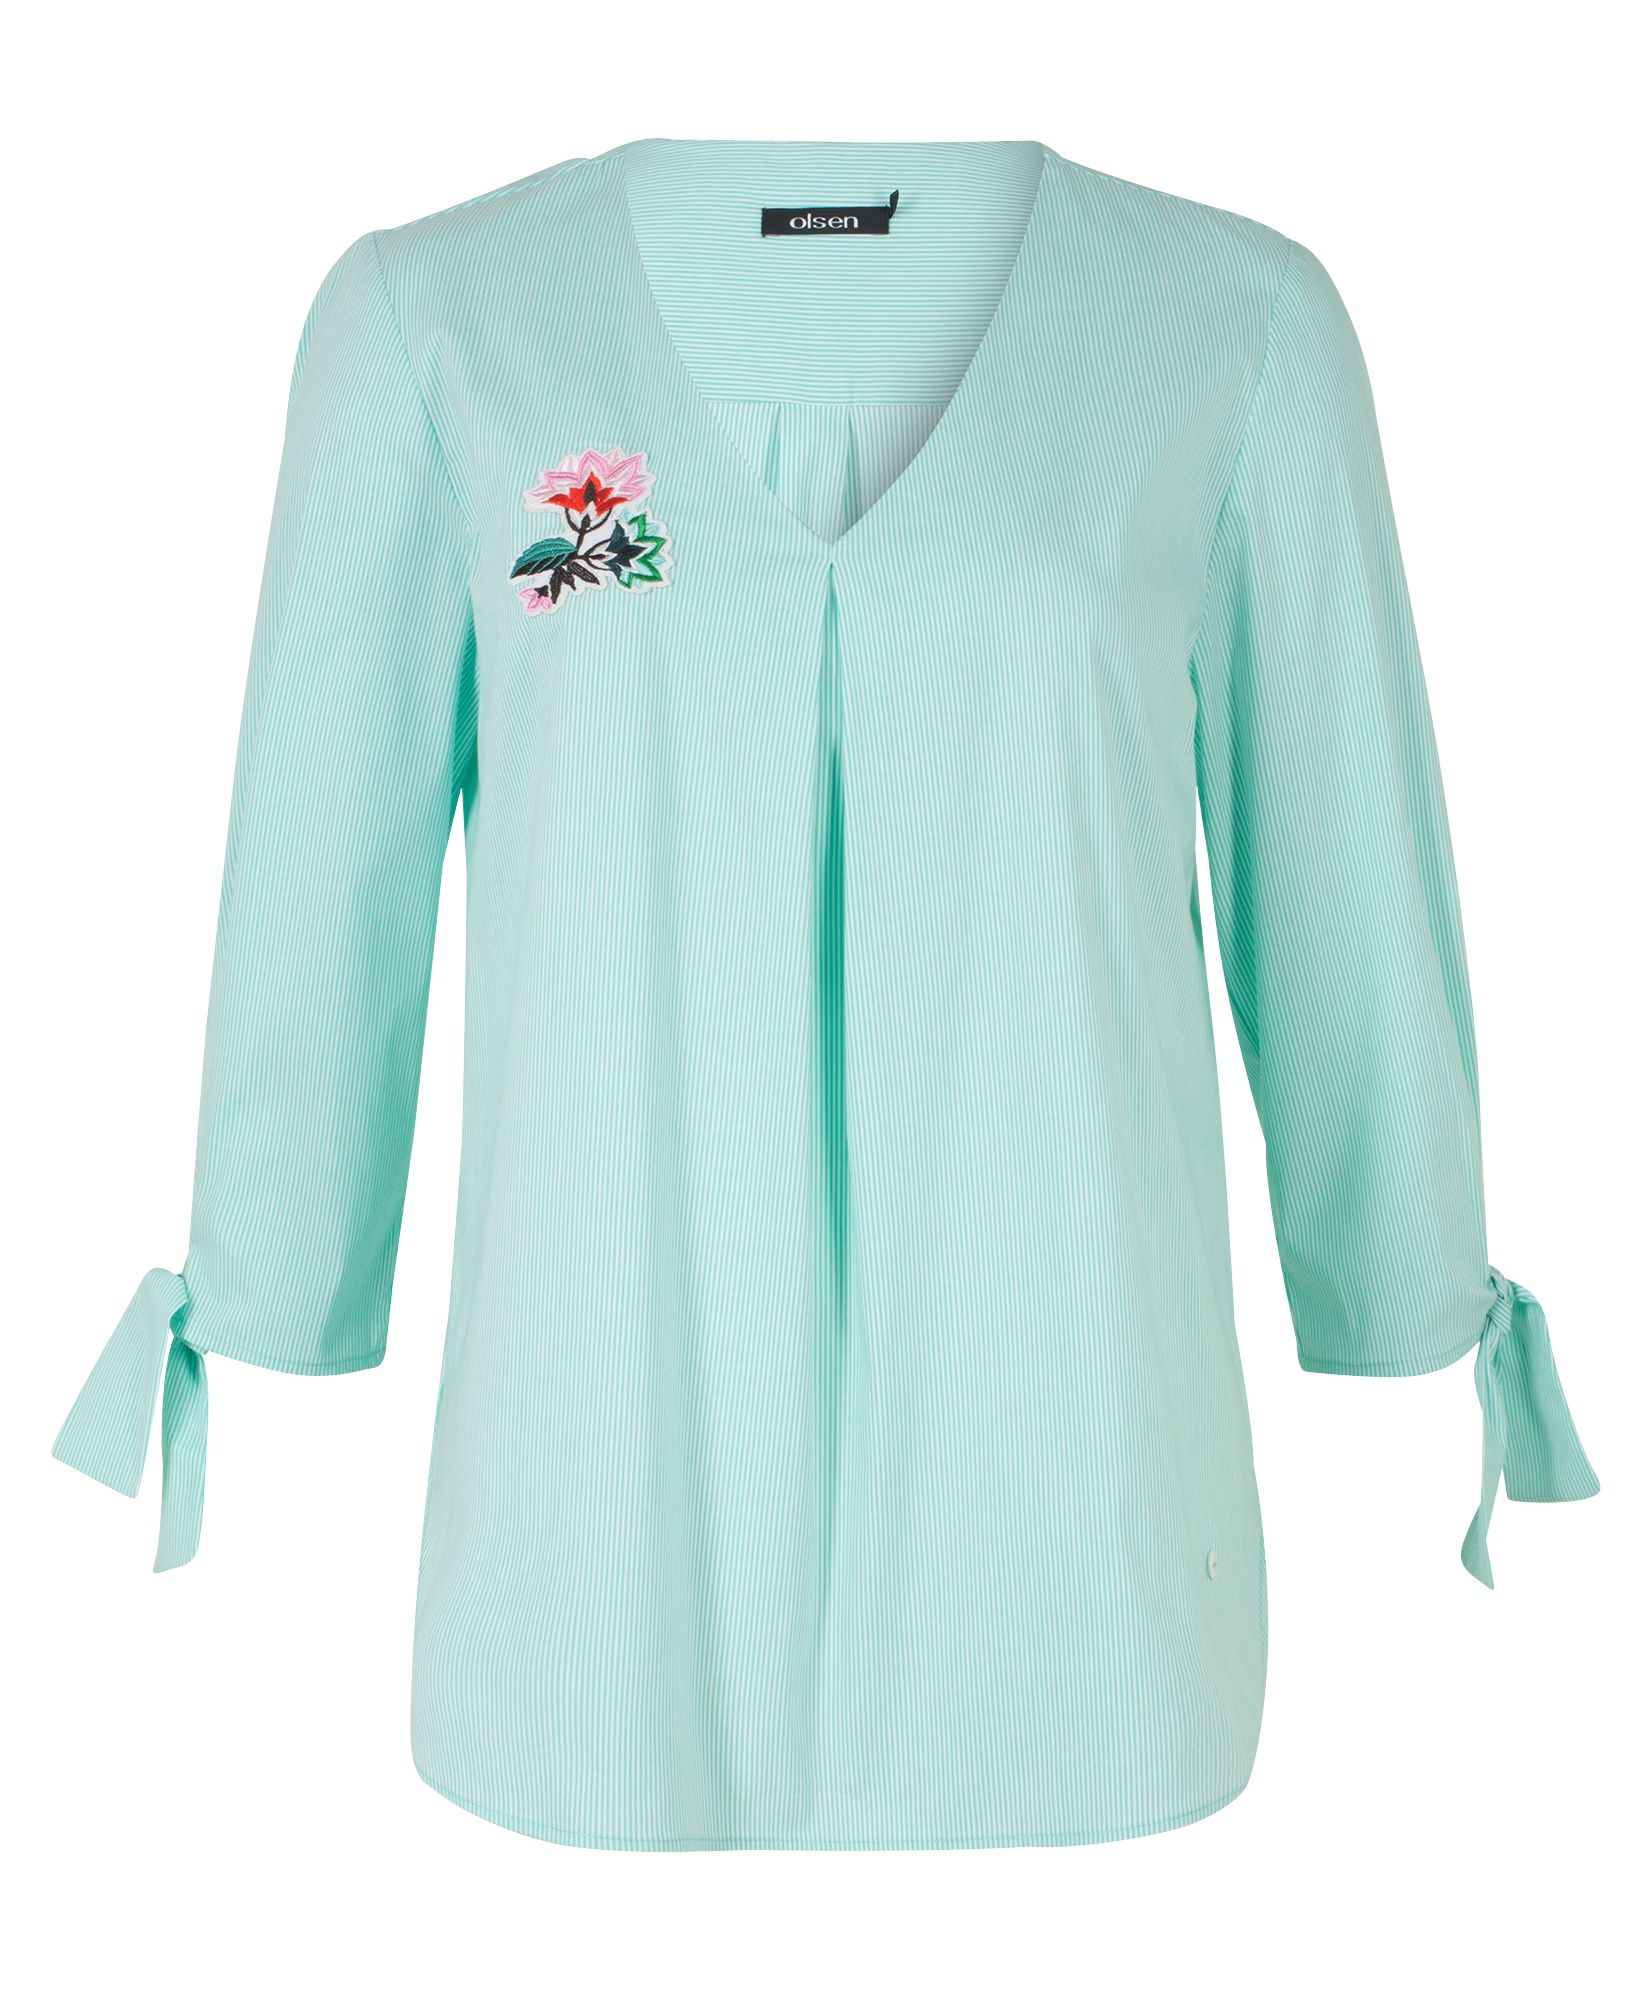 Olsen Blouse Flower Patch, Jade